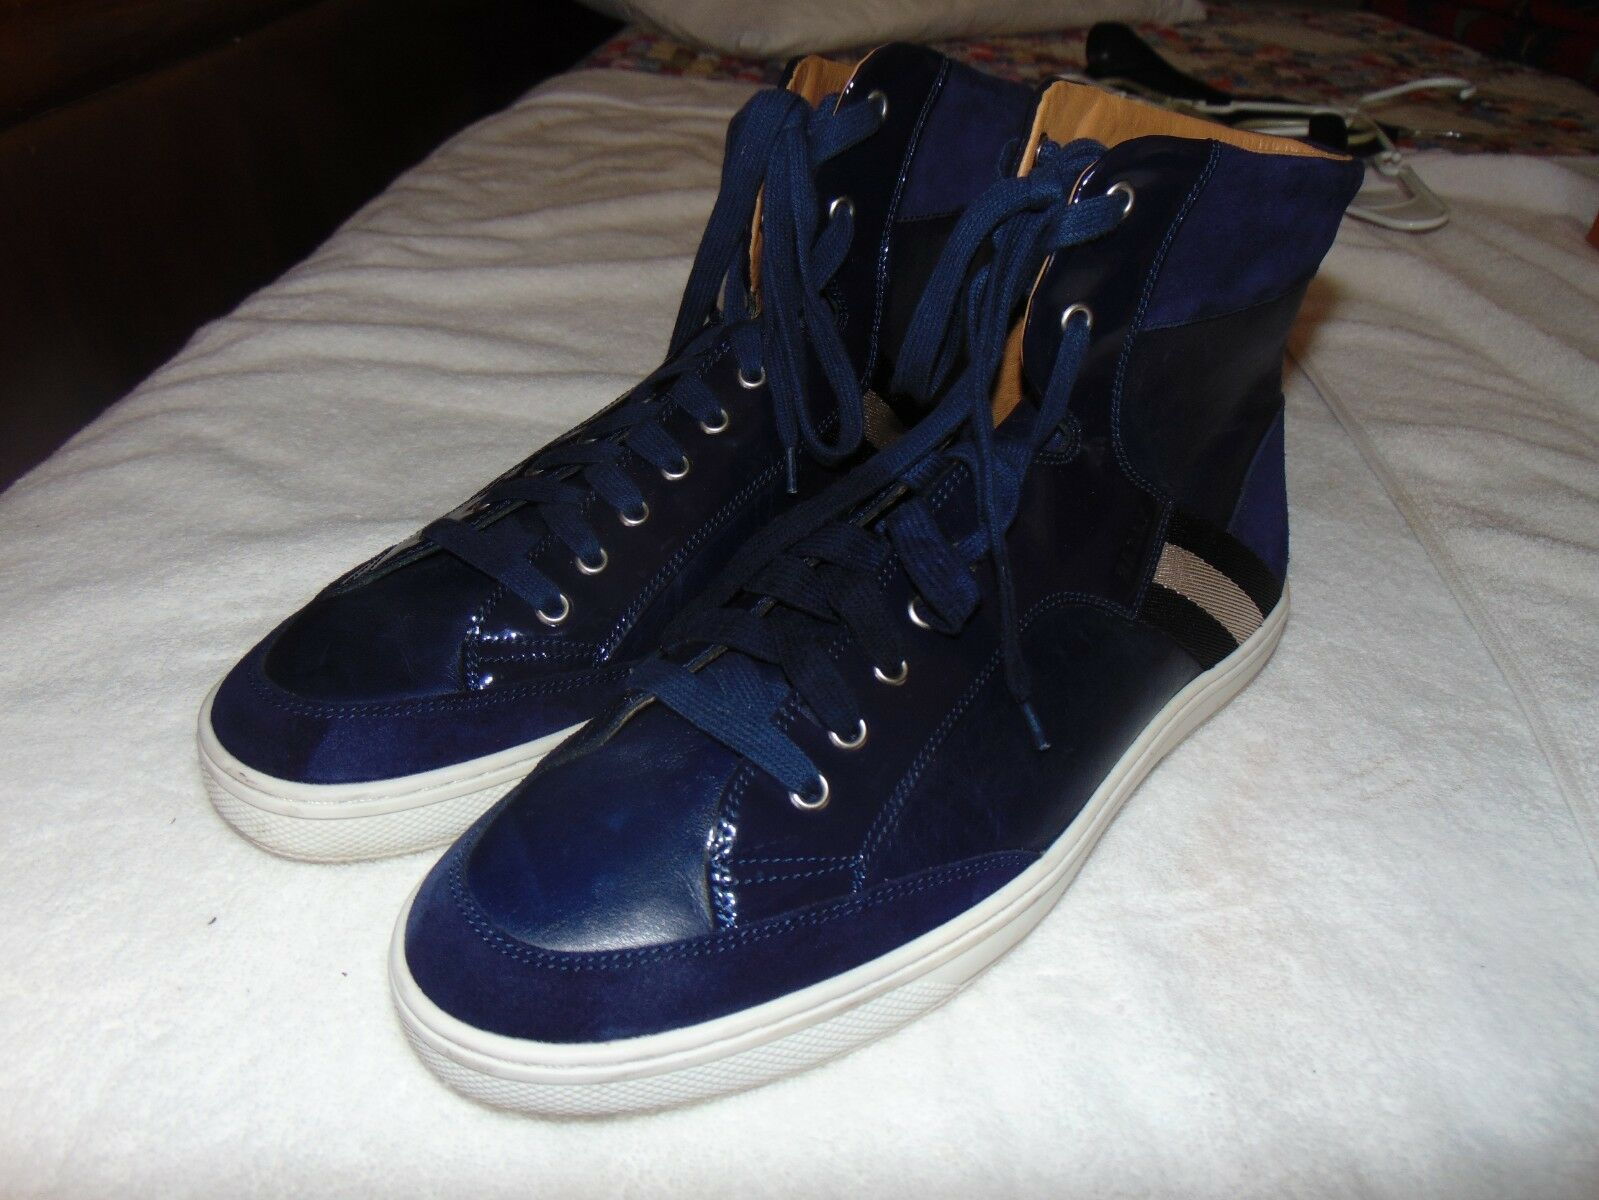 Bally Oldani   146 146 146  blu Mixed-Leather High-Top scarpe da ginnastica 11.5  D SOLD OUT  599 T 983d9a